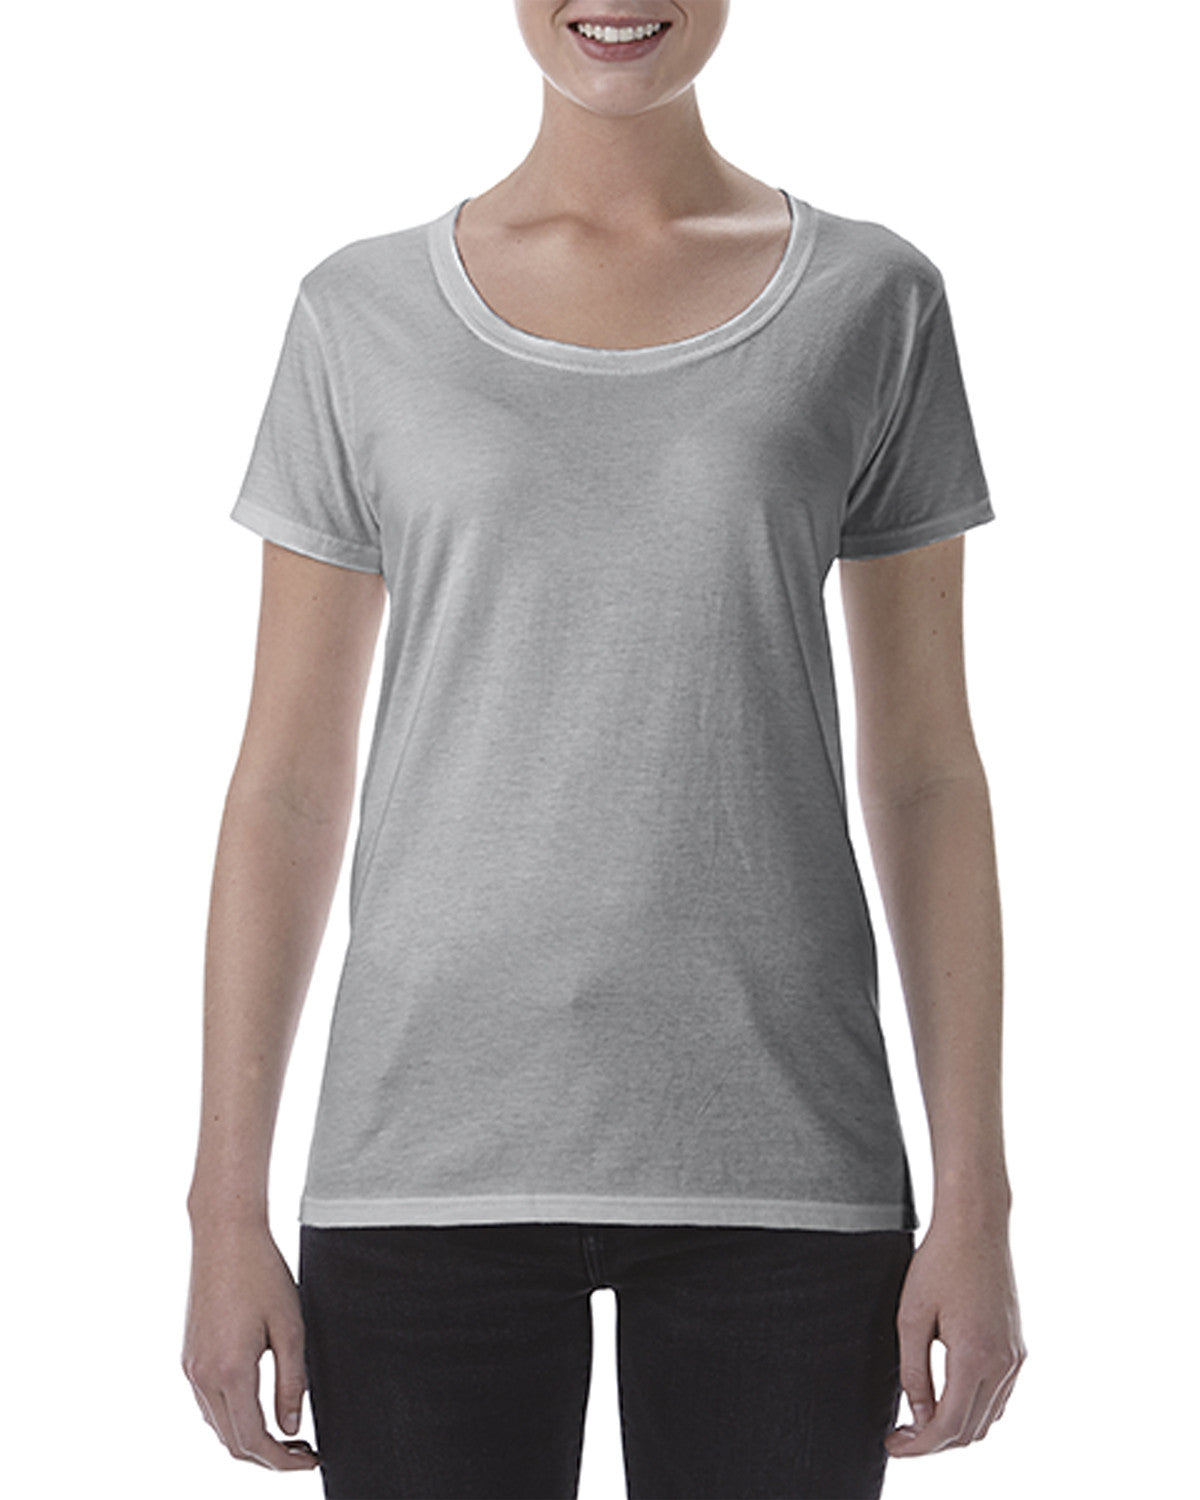 CH Gildan Ladies' Softstyle® 4.5 oz. Deep Scoop T-Shirt - Sport Grey